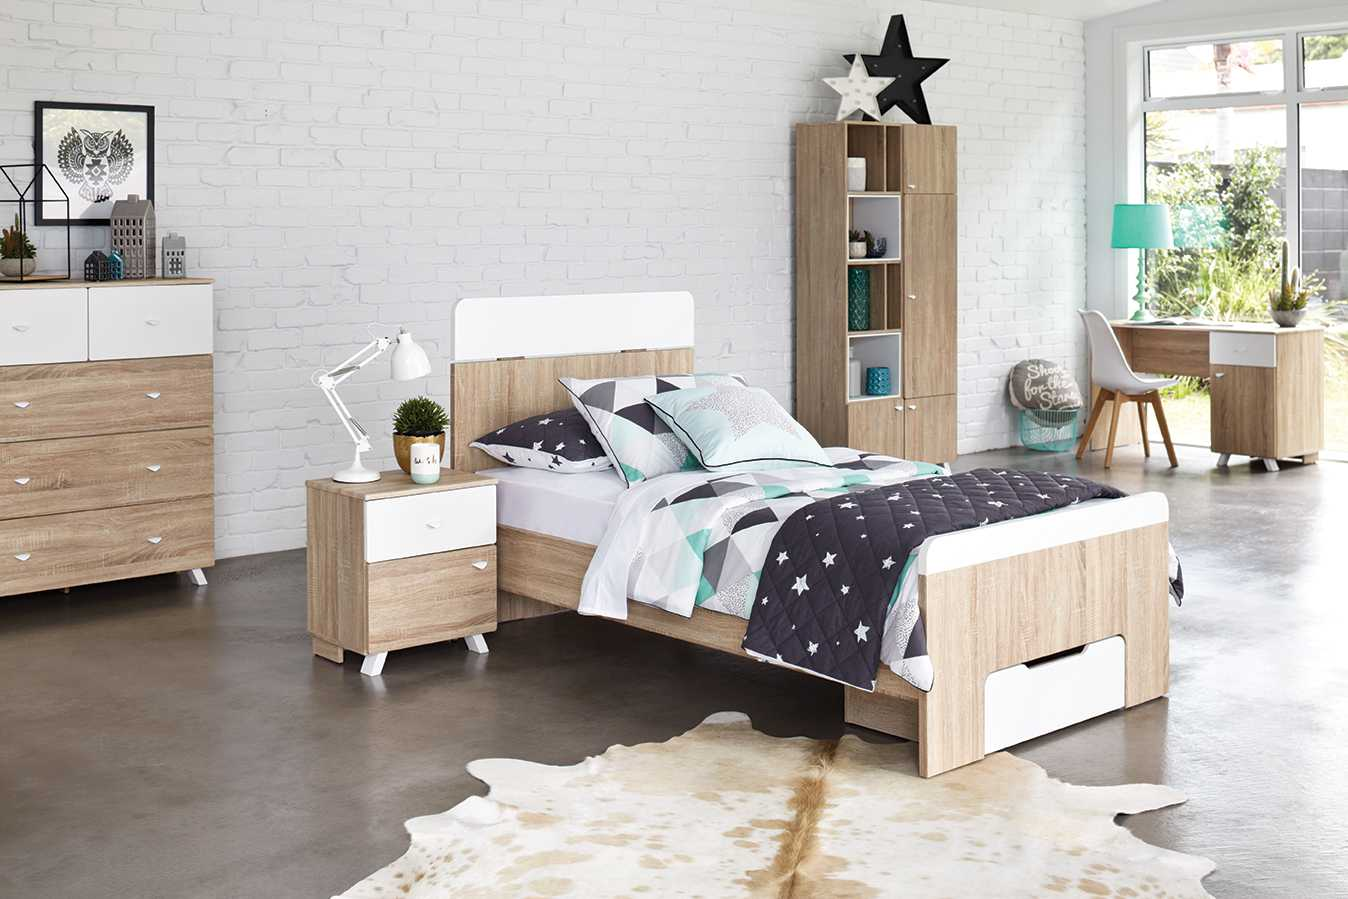 Kids Bedroom Harvey Norman bedroom furniture - beds, bed, mirror, lighting | harvey norman